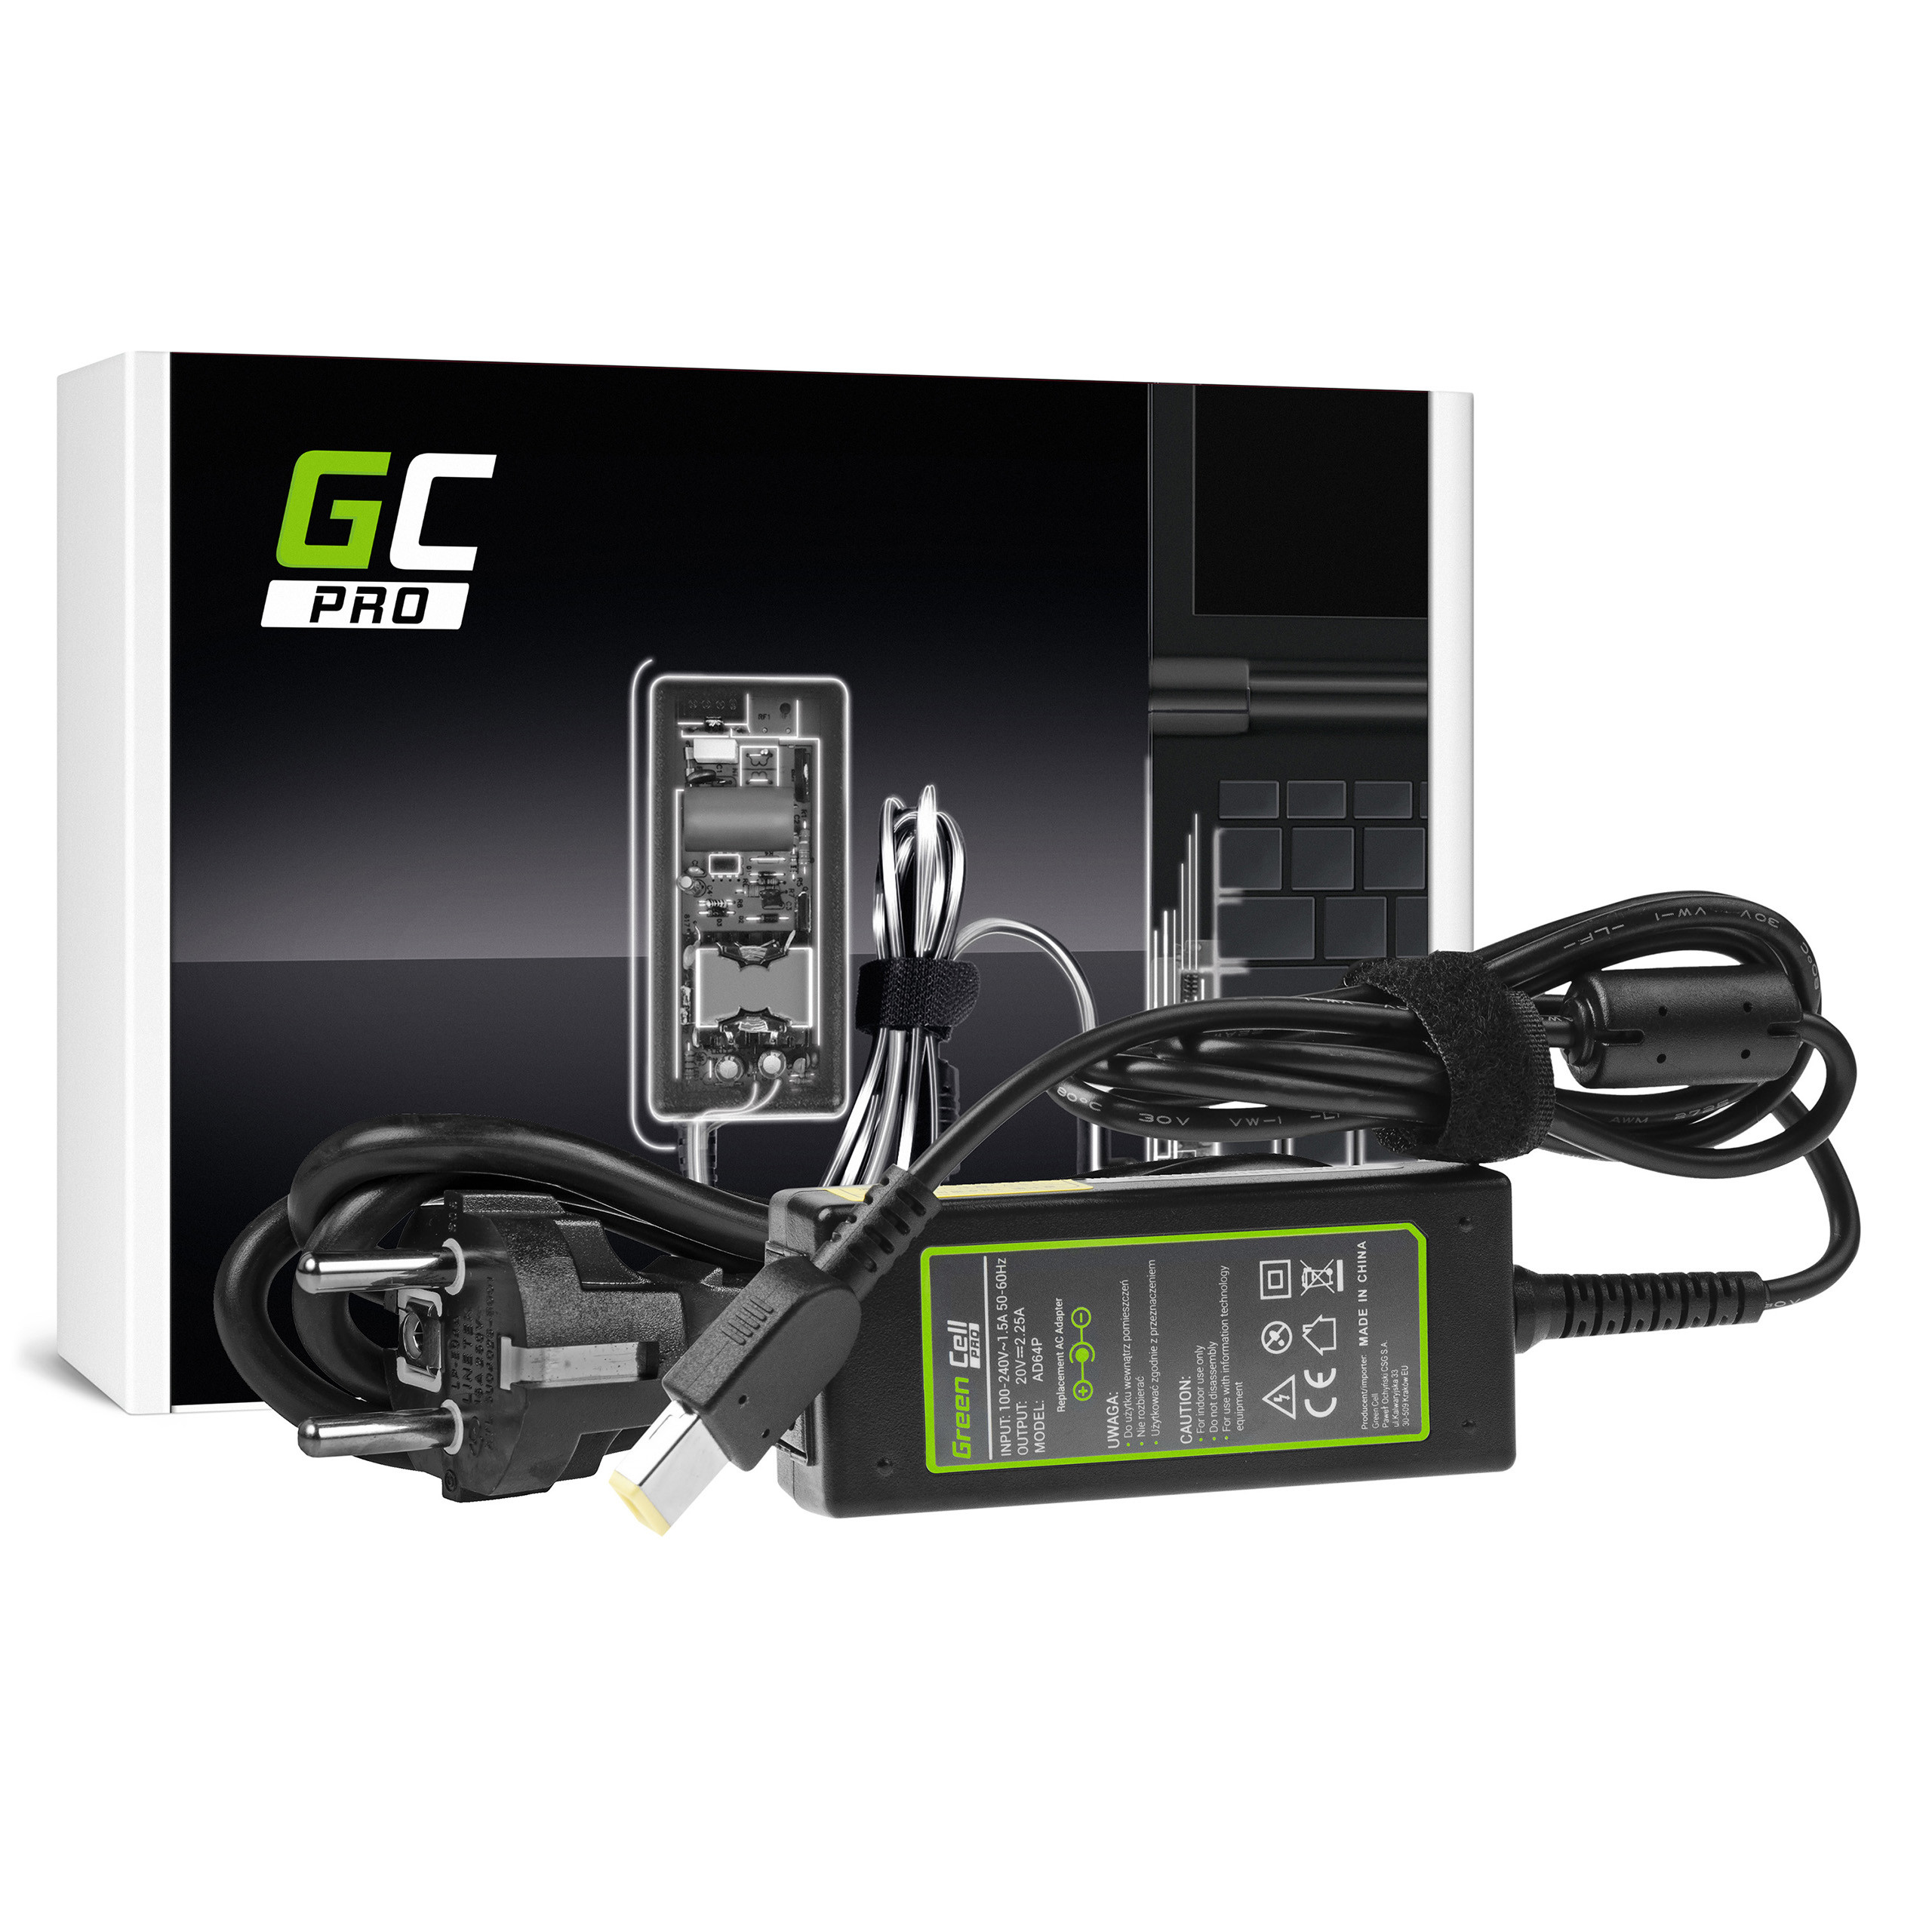 Green Cell PRO Charger AC Adapter 20V 2.25A 45W for Lenovo G50-30 G50-70 G505 Z50-70 ThinkPad T440 T450 IdeaPad S210